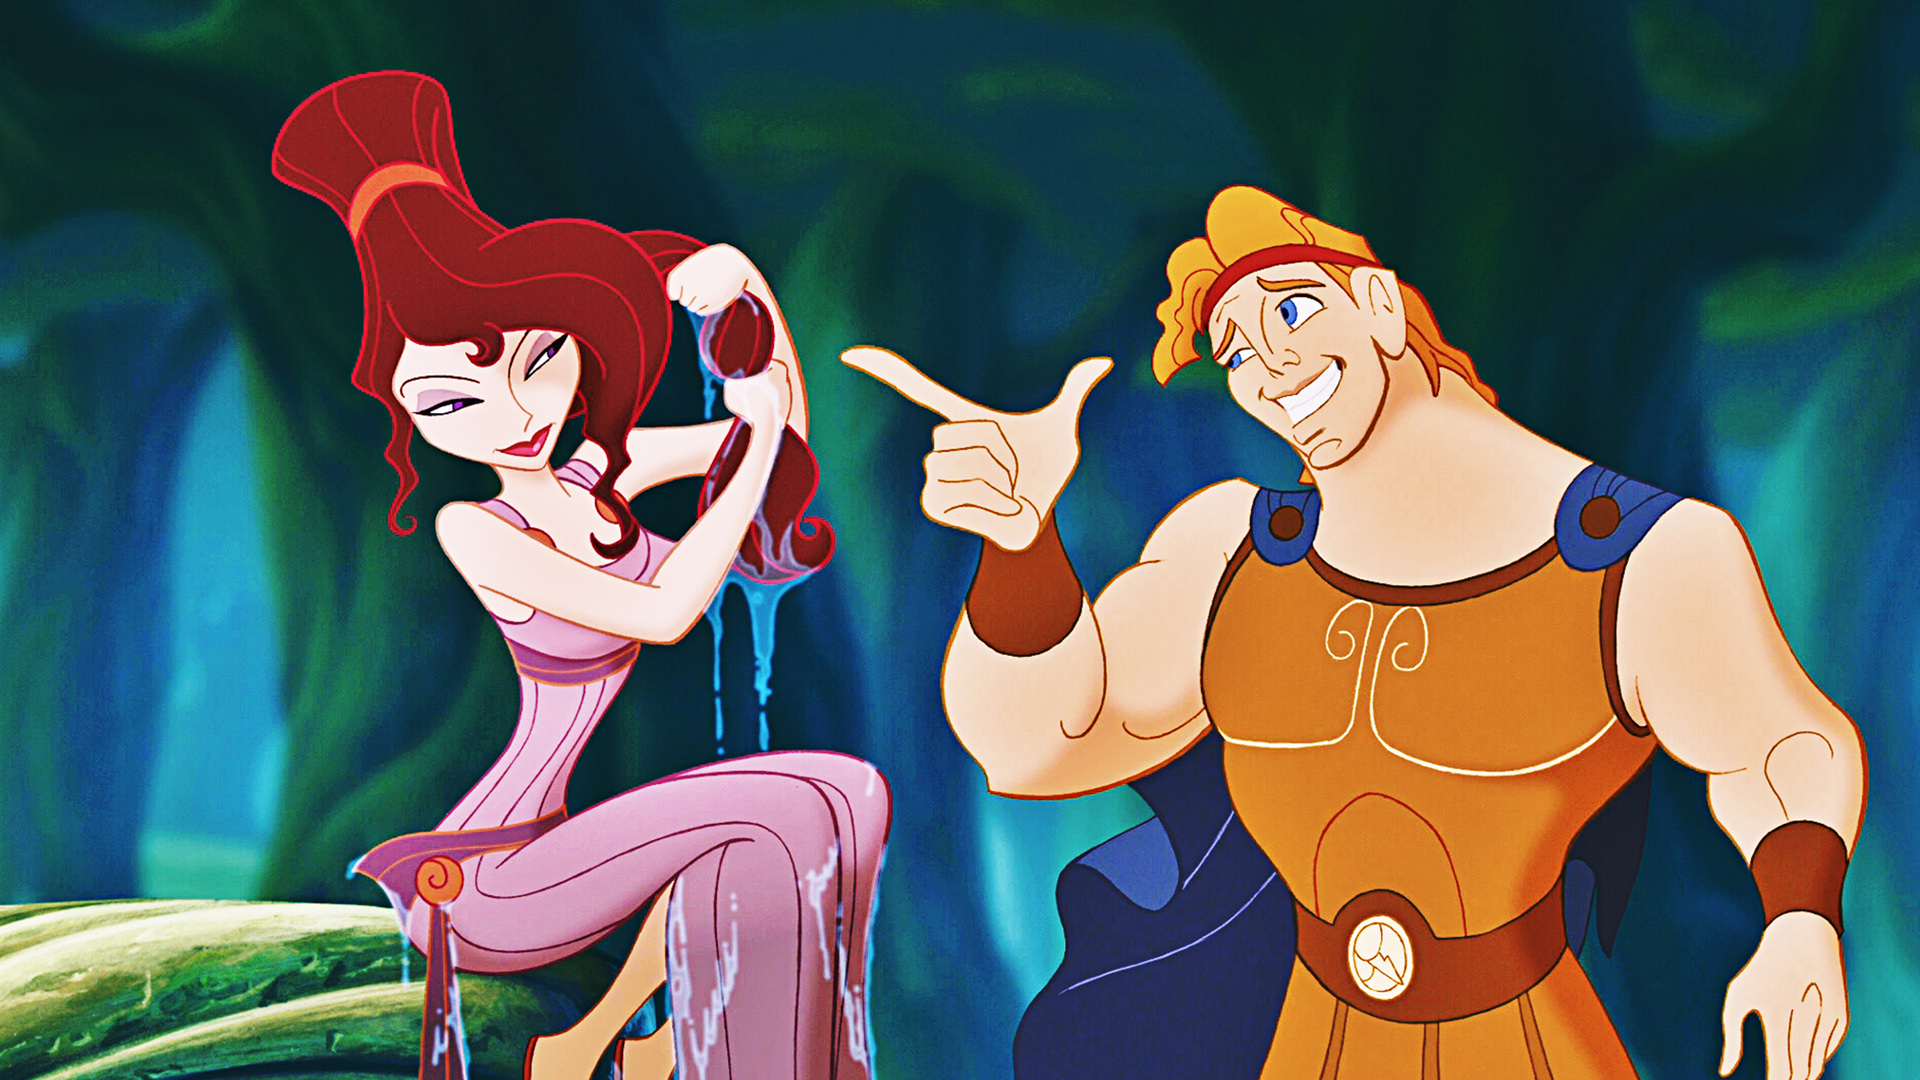 Hercules (voiced by Tate Donovan) and Megara (voiced by Susan Egan) in Hercules (1997)